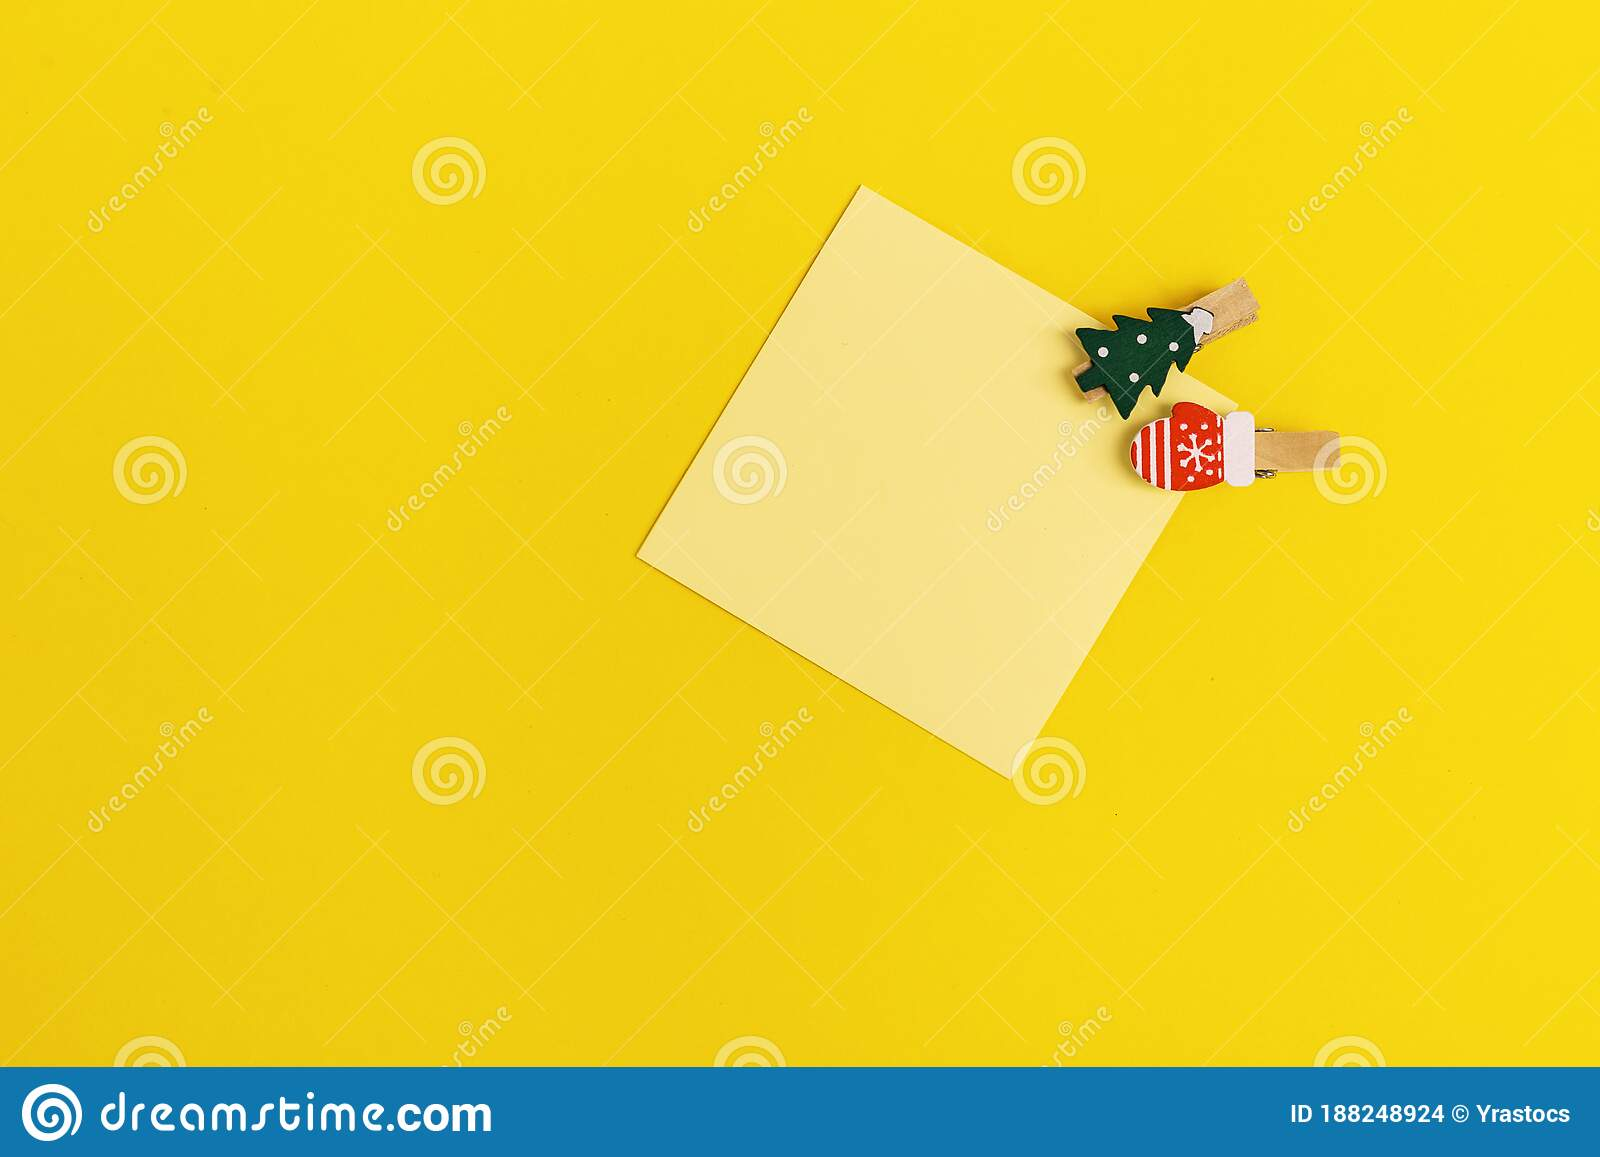 Yellow Paper Memo Note Decorated Christmas Tree Blank Sticky Square Reminder Stock Photo Image Of Write Memory 188248924